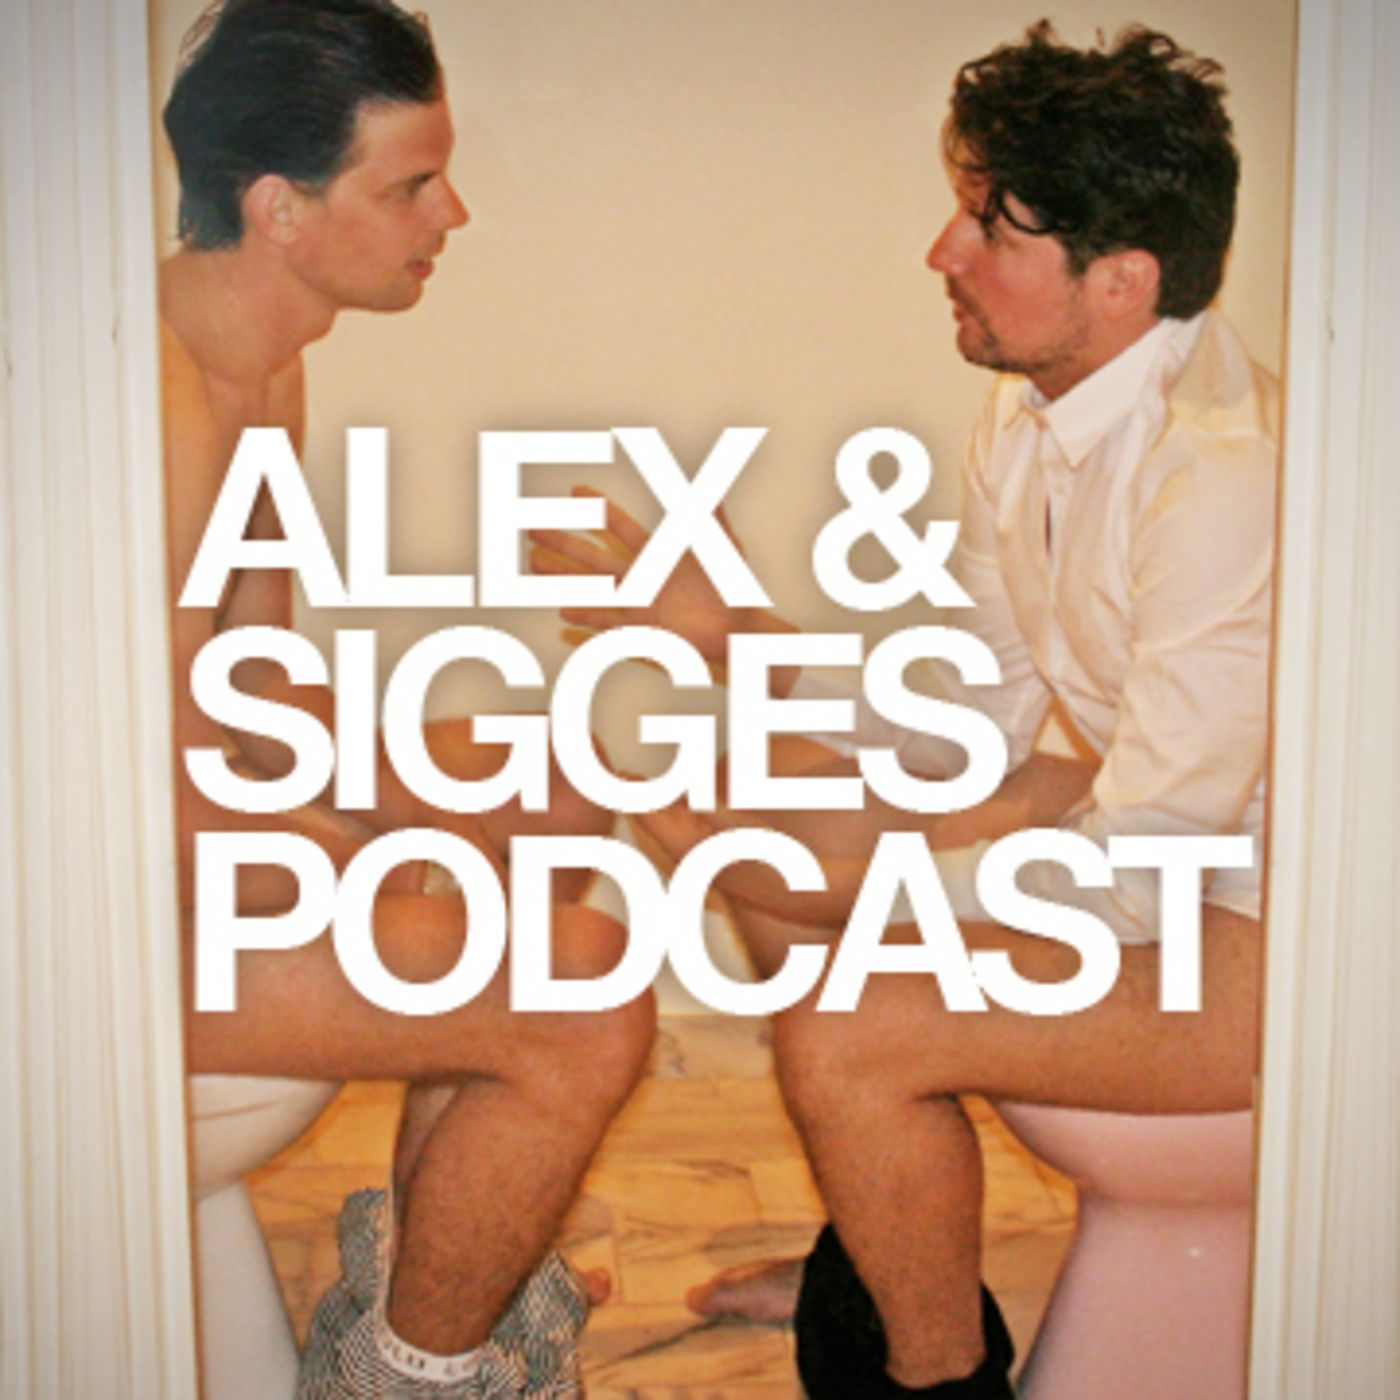 Alex & Sigges podcast